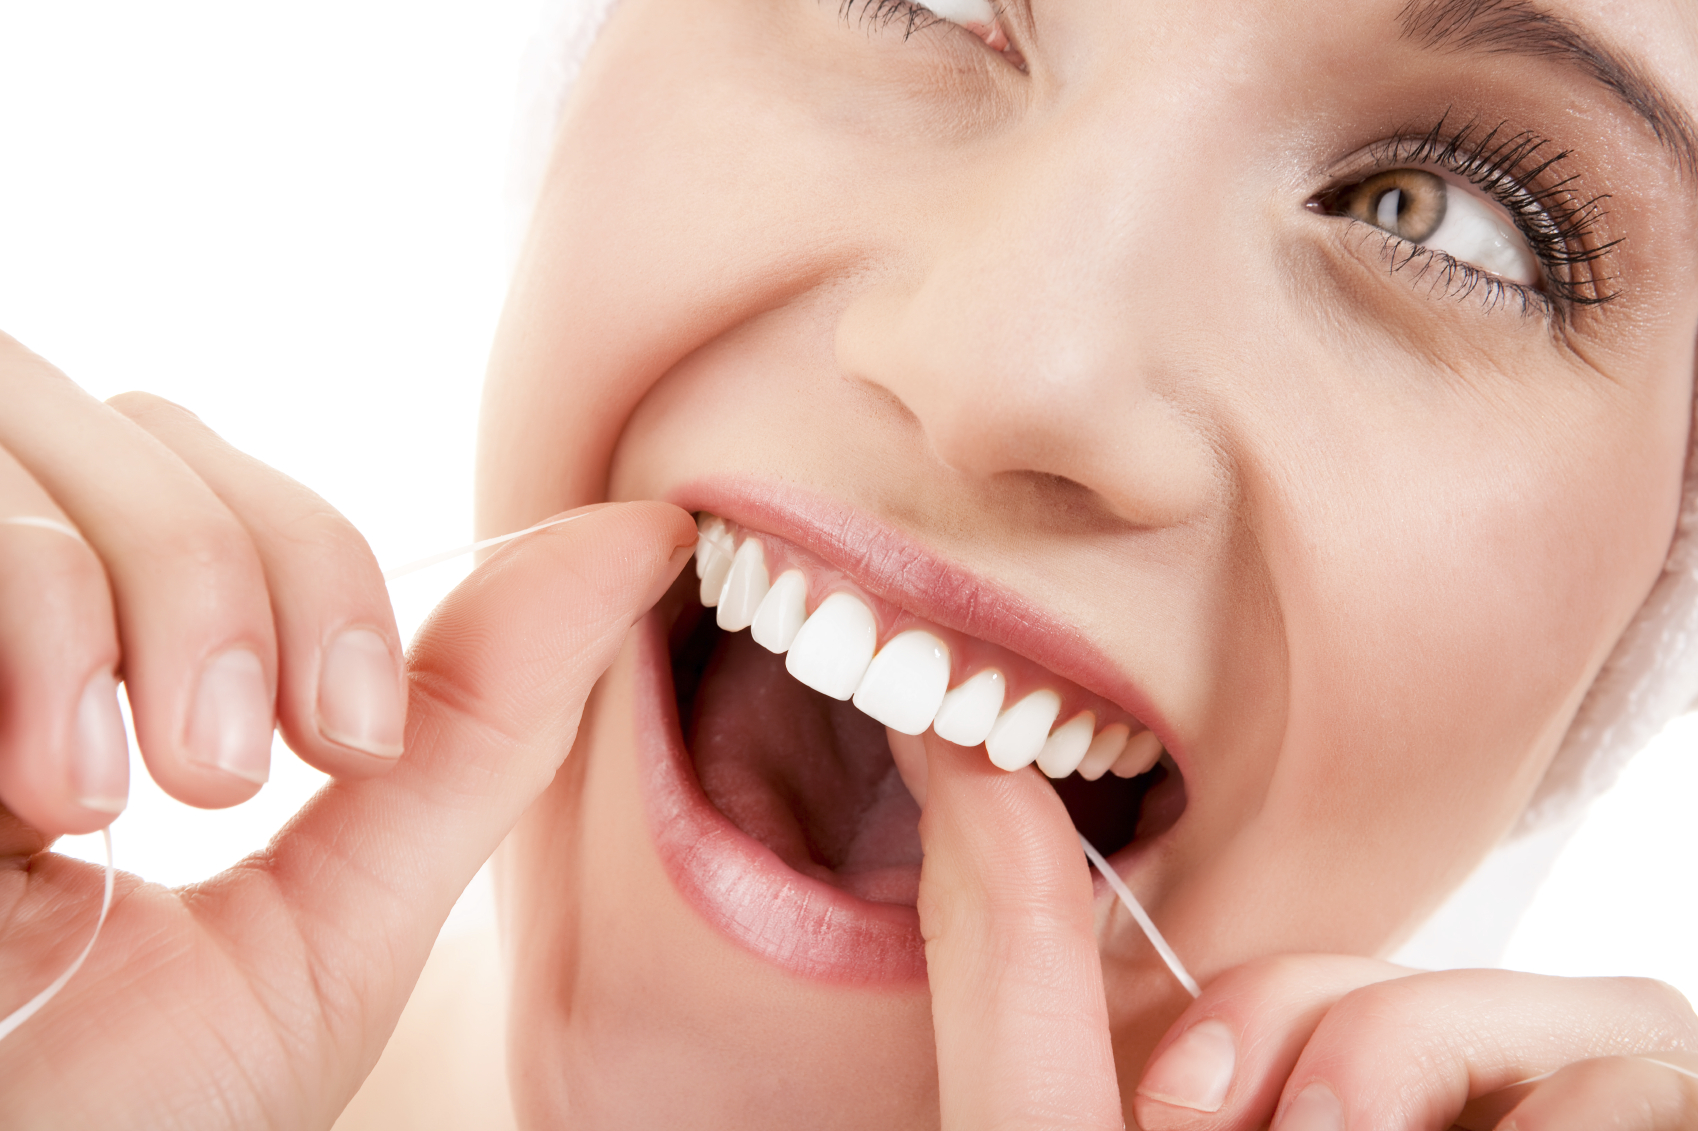 woman-flossing-close-up-oral-health